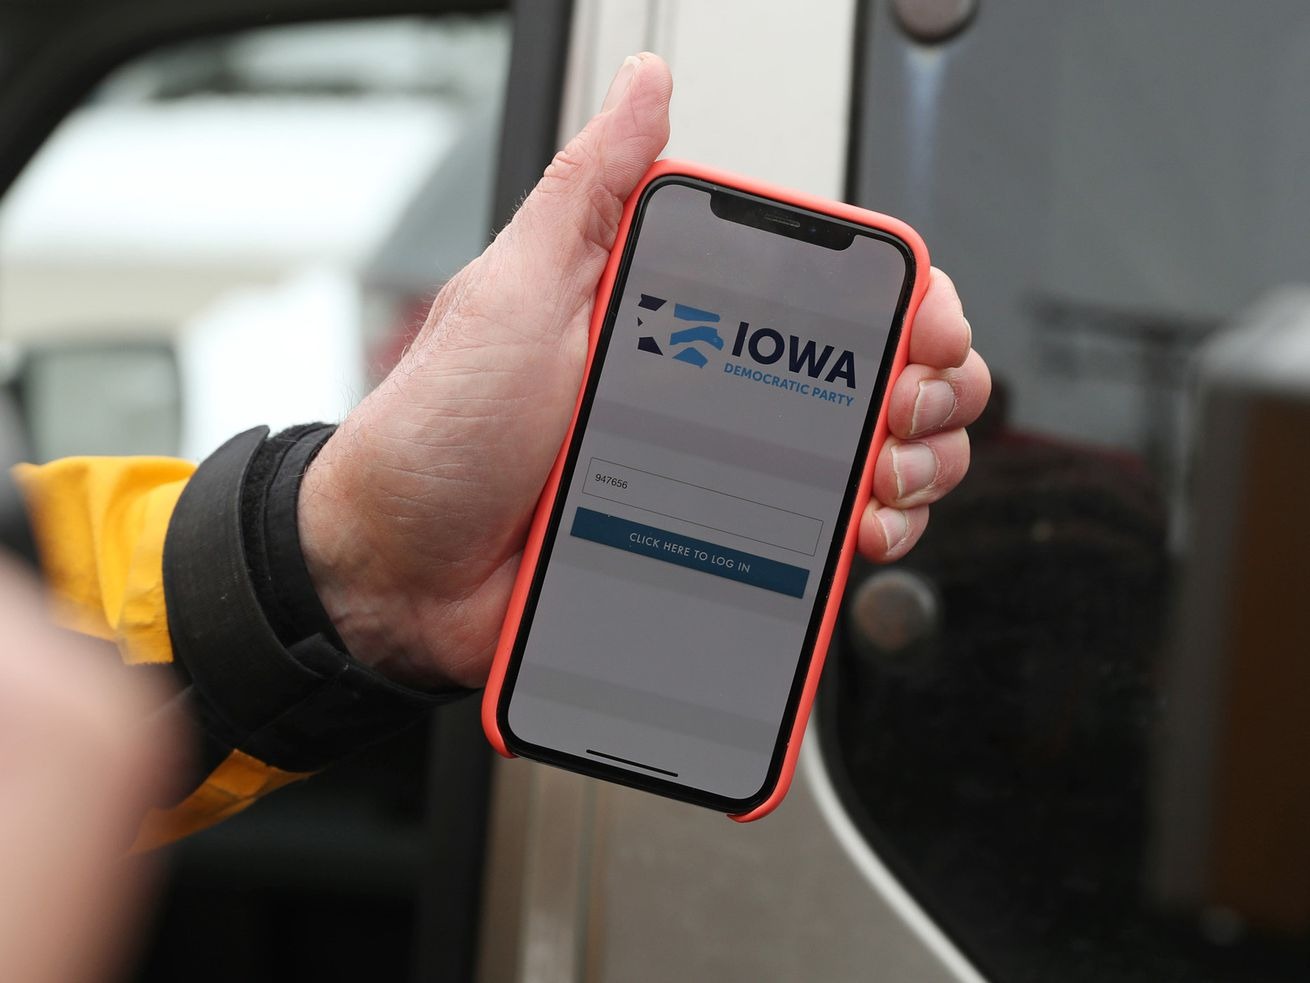 A phone where the screen reads: Iowa Democratic Party.